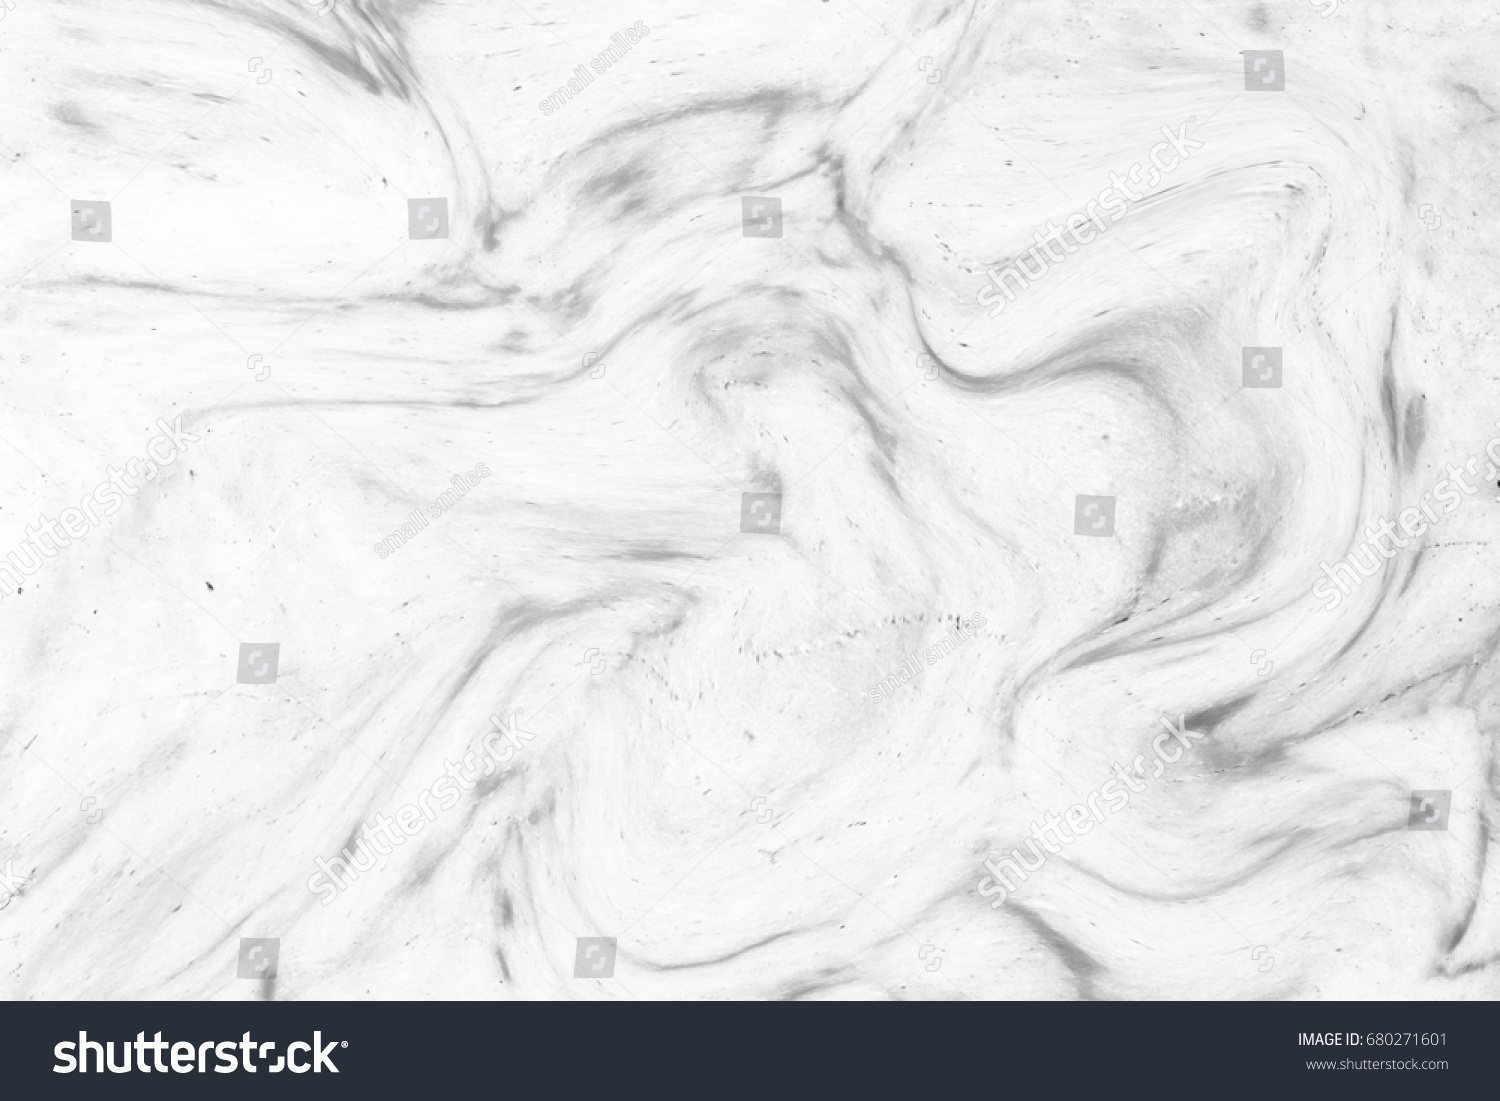 Amazing Wallpaper Marble High Definition - stock-photo-abstract-wave-pattern-white-gray-marble-ink-texture-background-for-wallpaper-or-skin-wall-tile-for-680271601  Gallery_246977.jpg